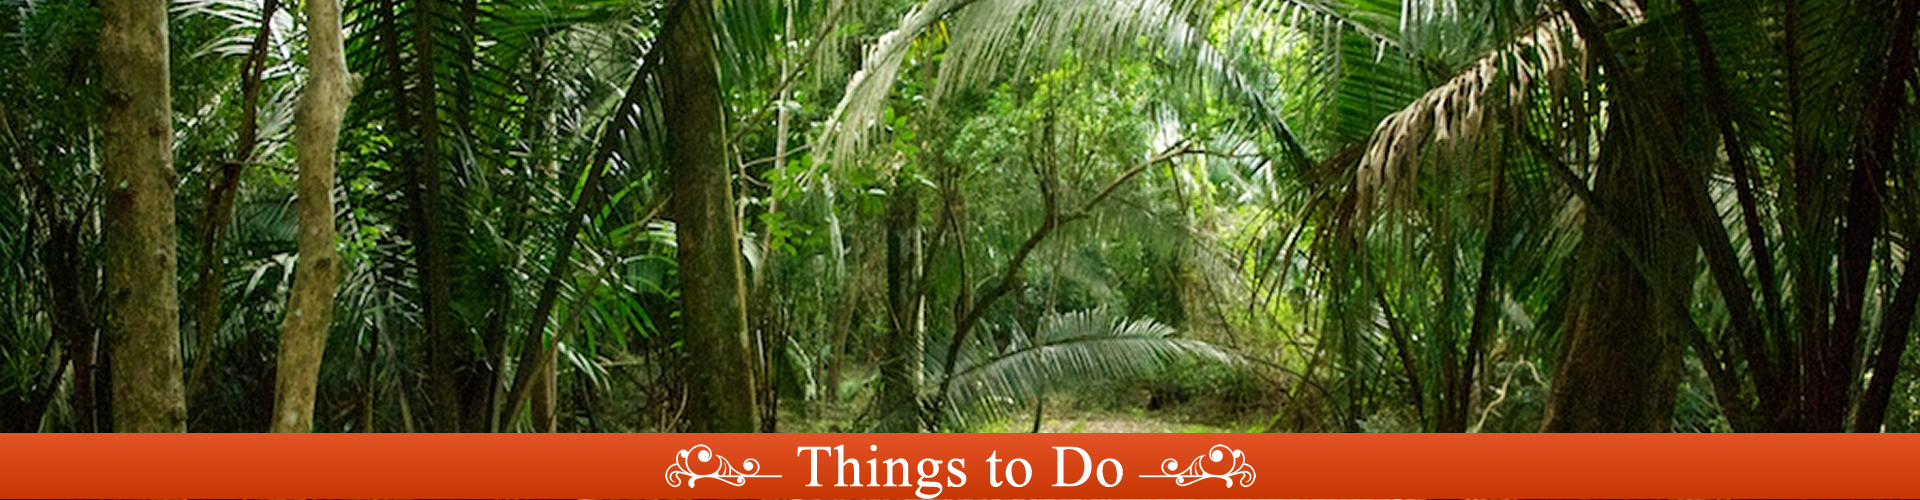 D-victoria-orange-walk-Belize-things-to-do-2